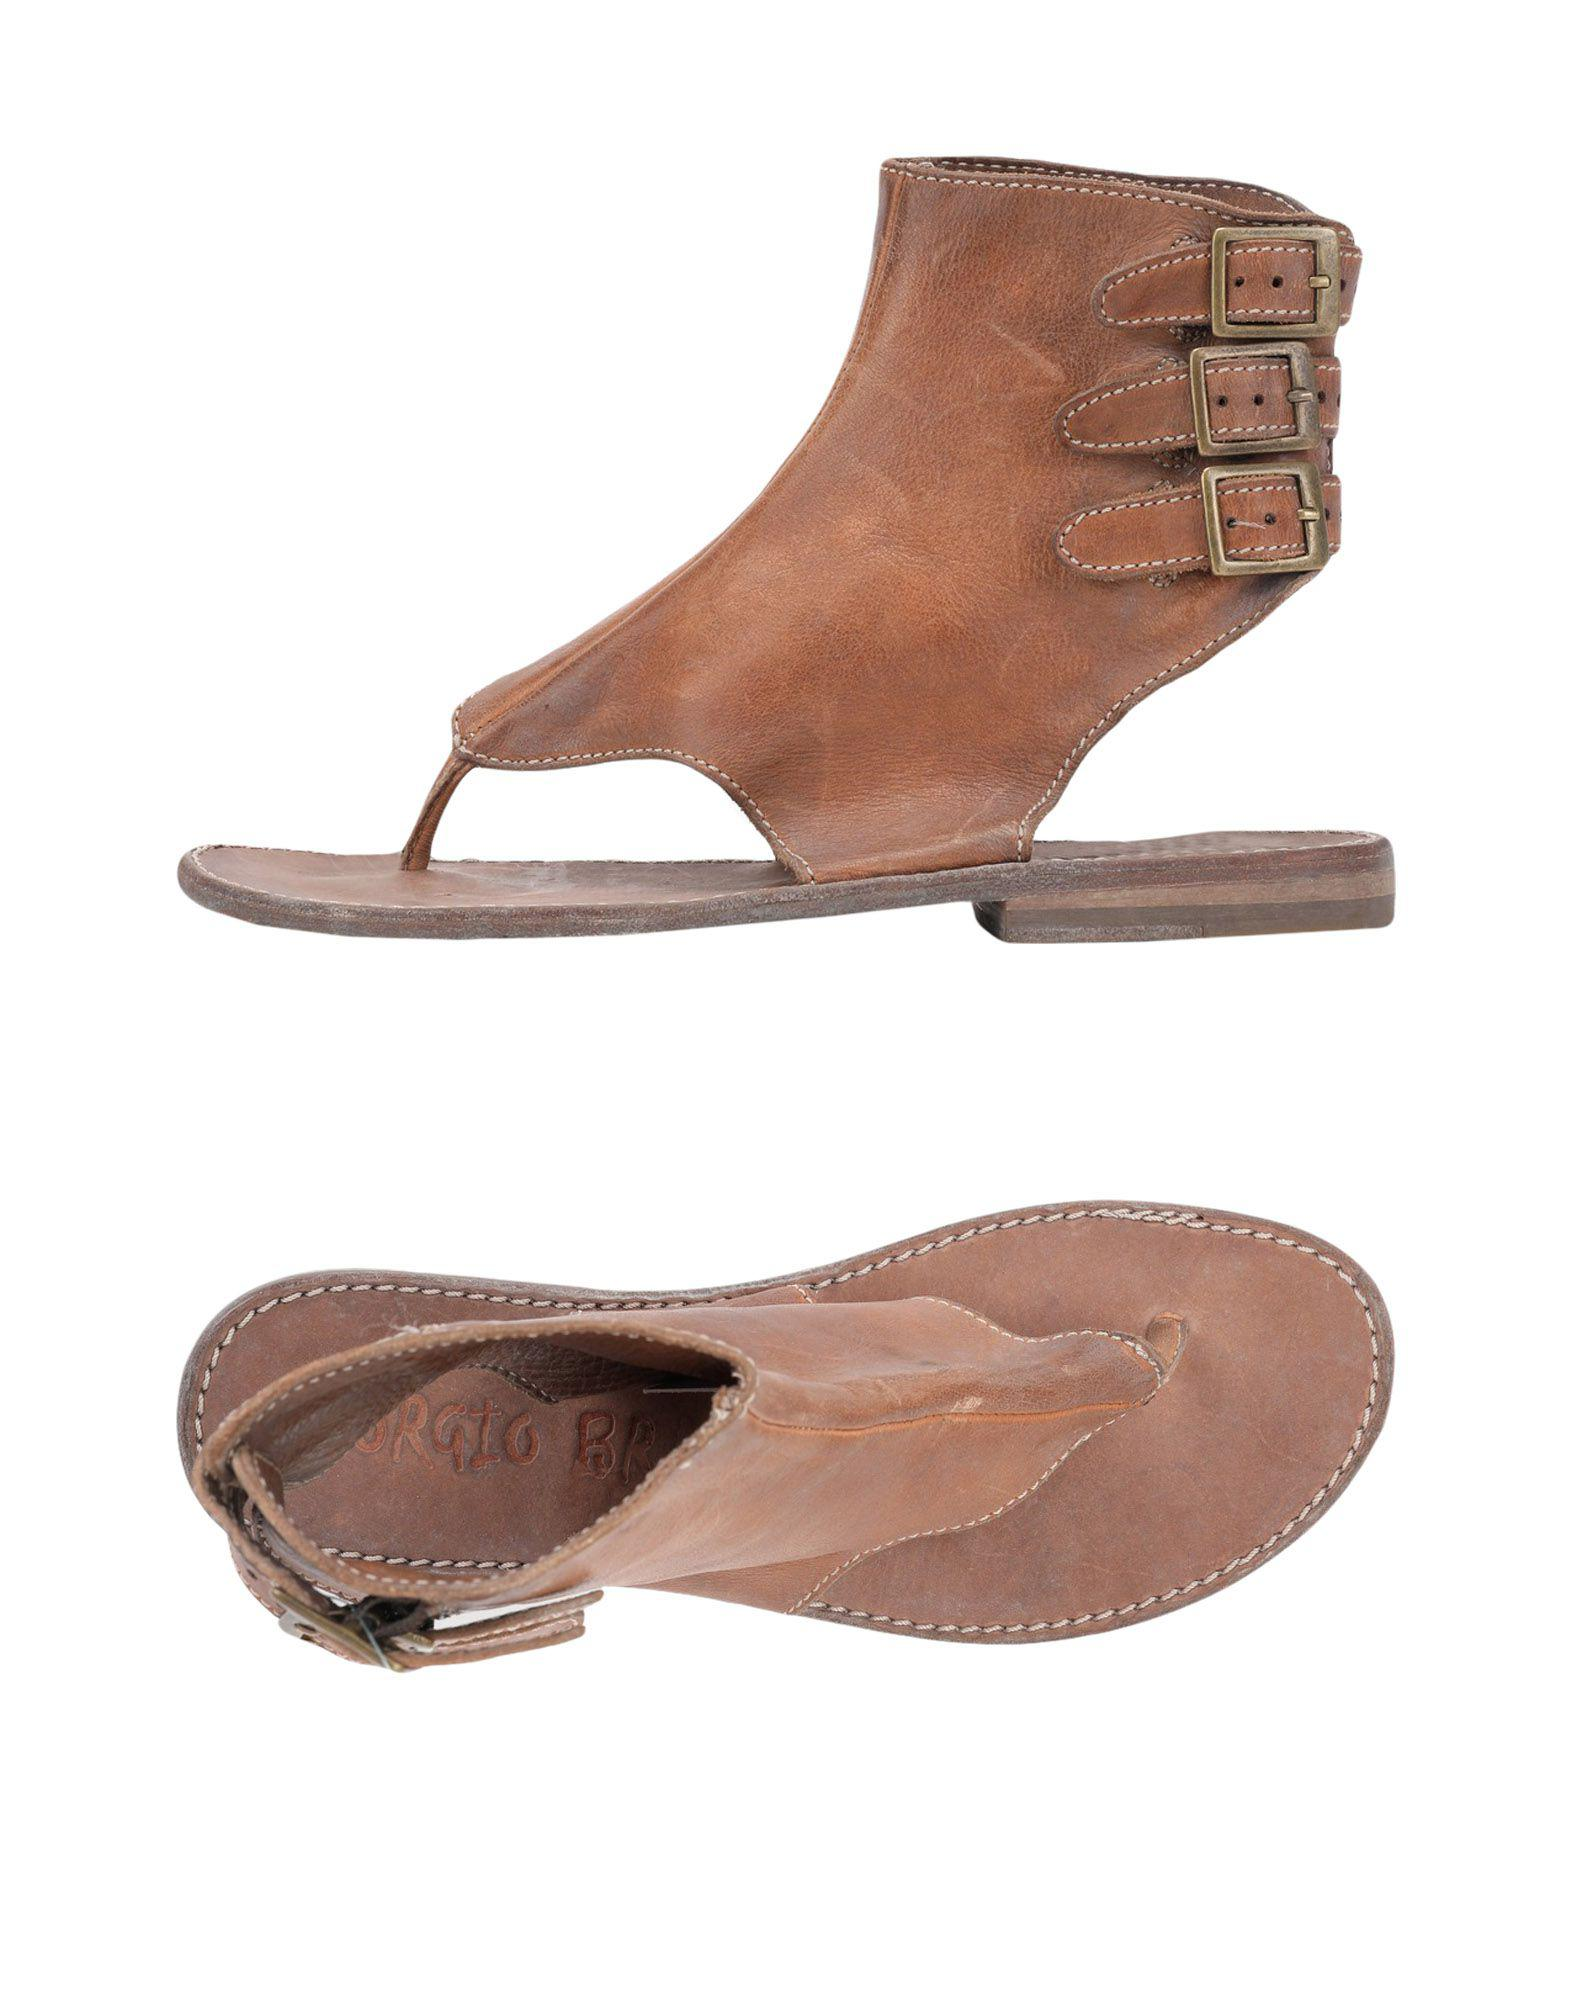 GIORGIO BRATO Sandals cheap prices cheap tumblr outlet store cheap online 2015 cheap price big discount sale online mhVa140wsw